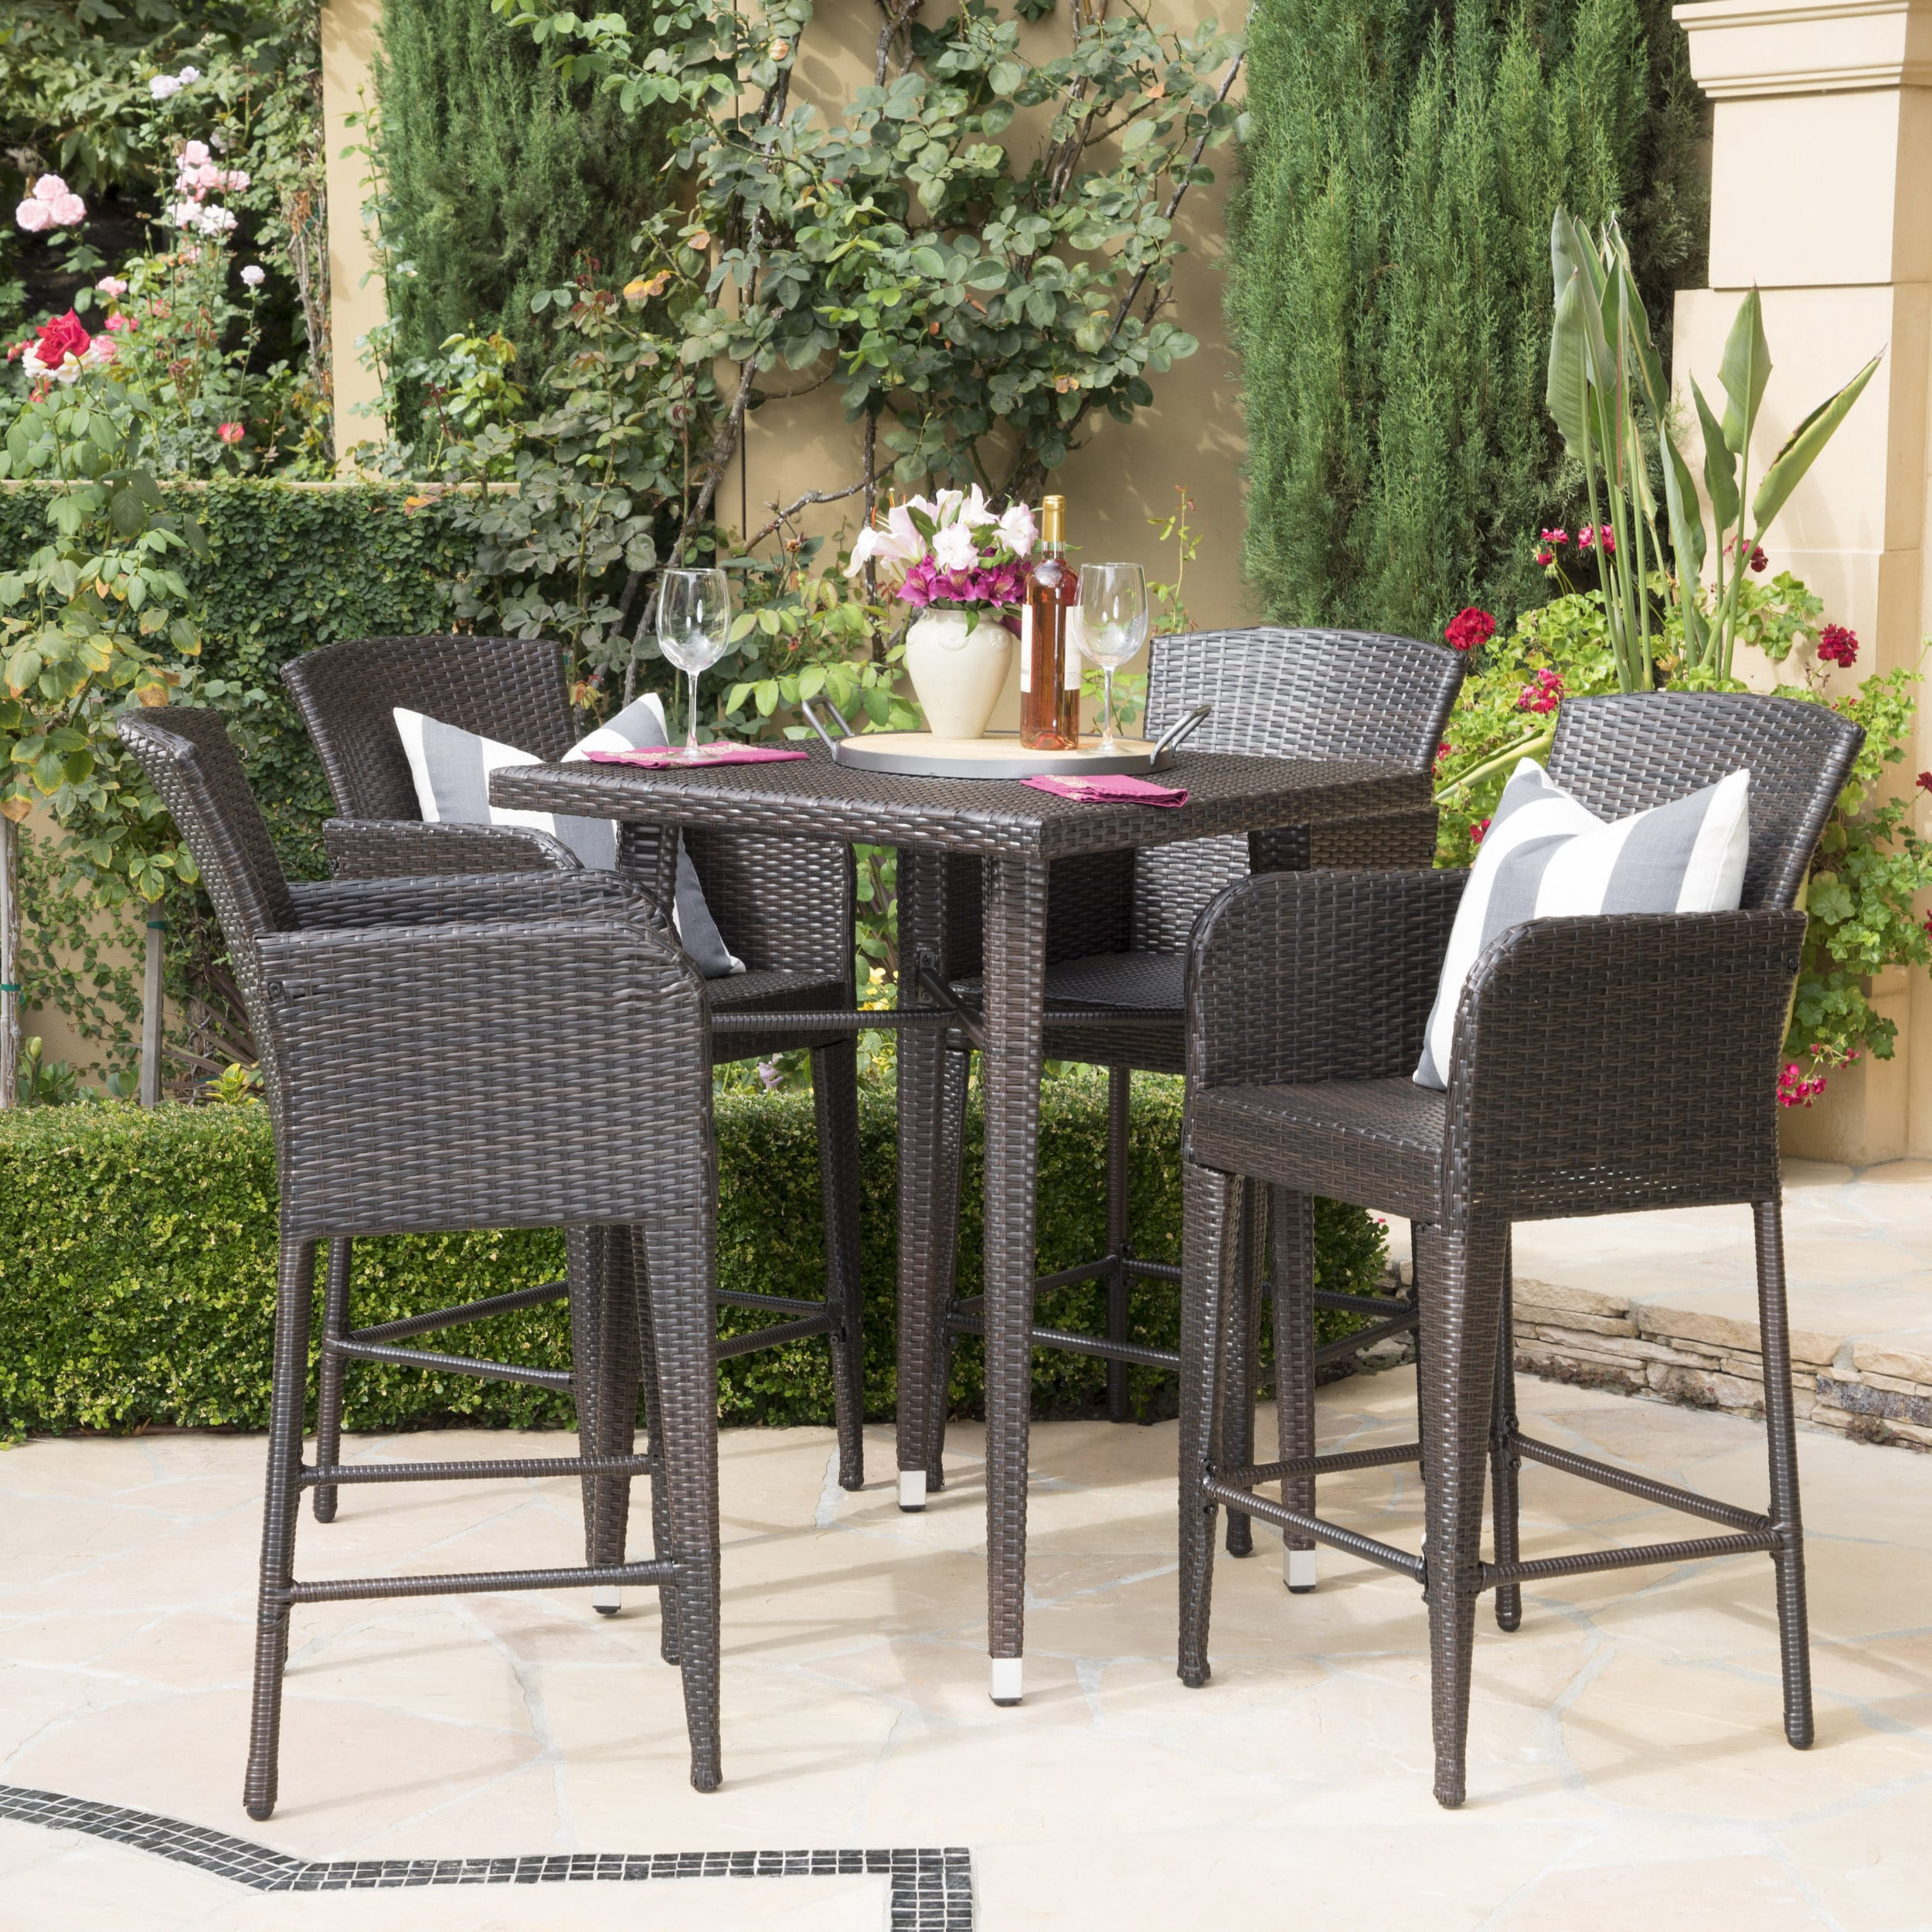 Christopher Knight Home Landis Outdoor 5-piece Wicker 32-inch Square Bar Set by